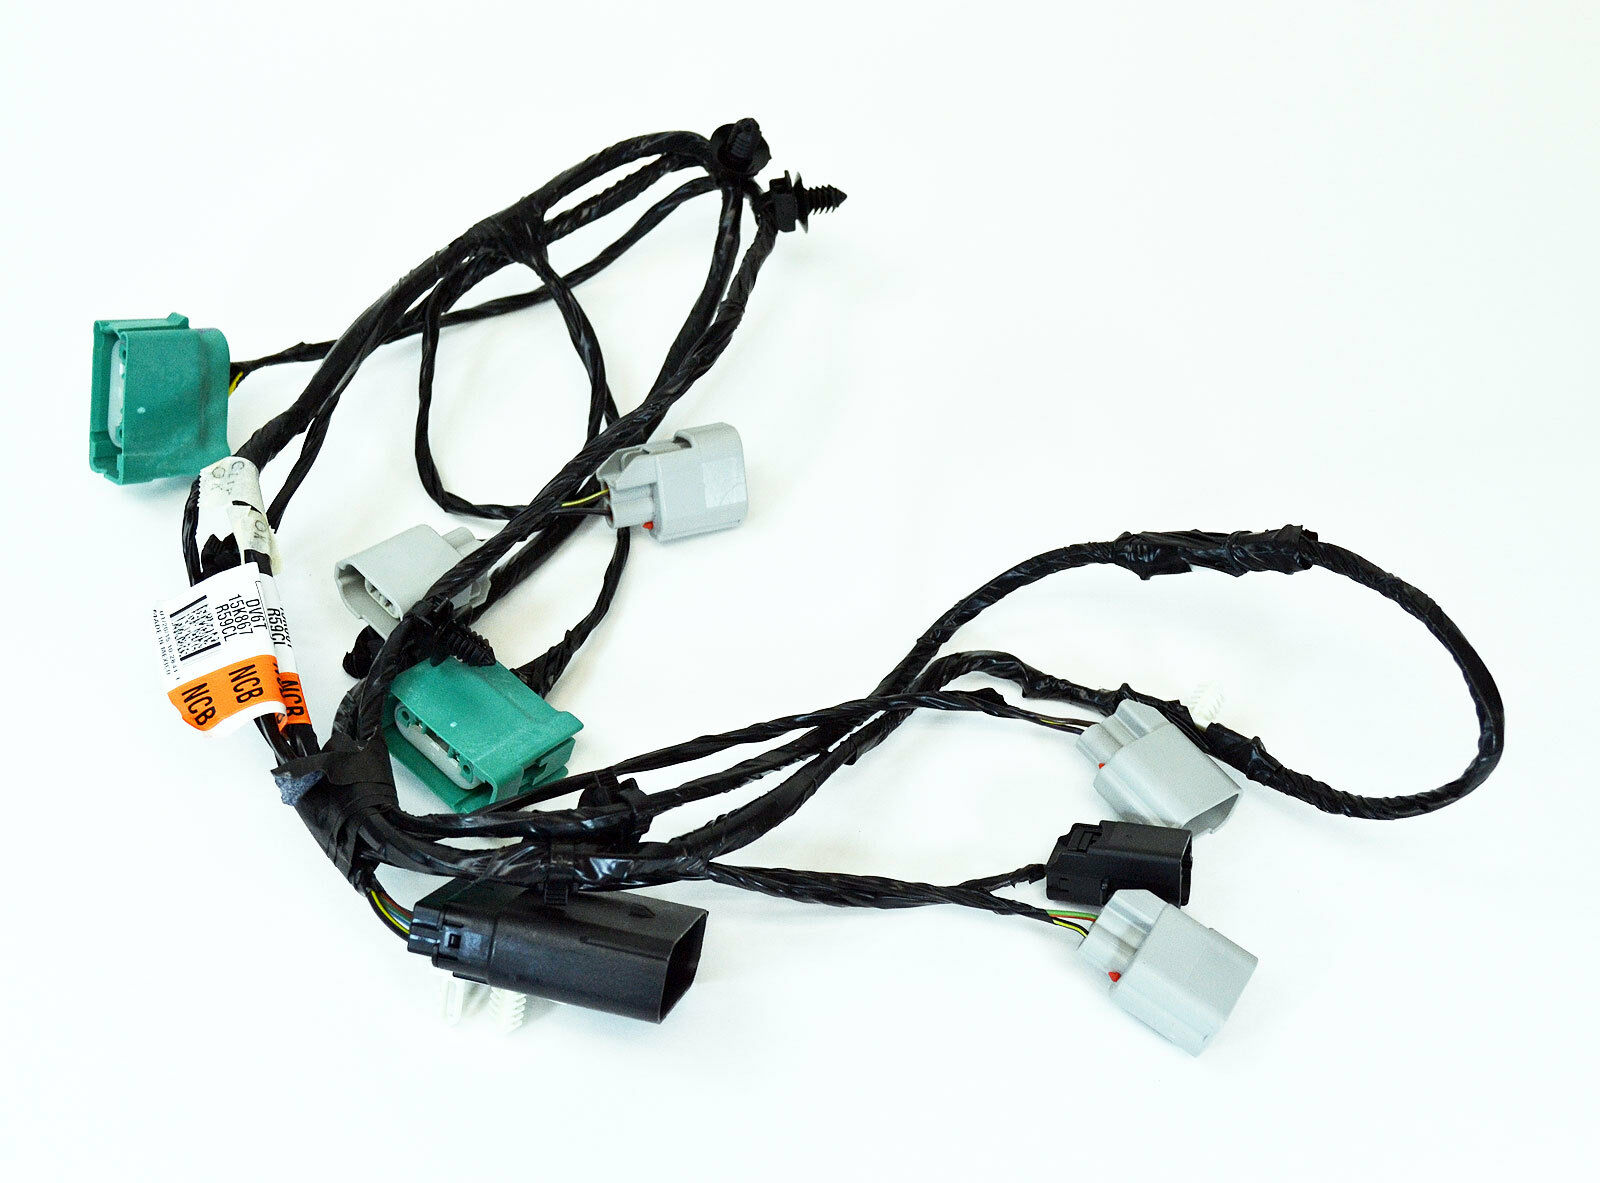 s l1600 ford oem headlight wiring harness dv6z15k867c image 31 ebay oem 2010 sentra headlight wiring harness plug at gsmx.co